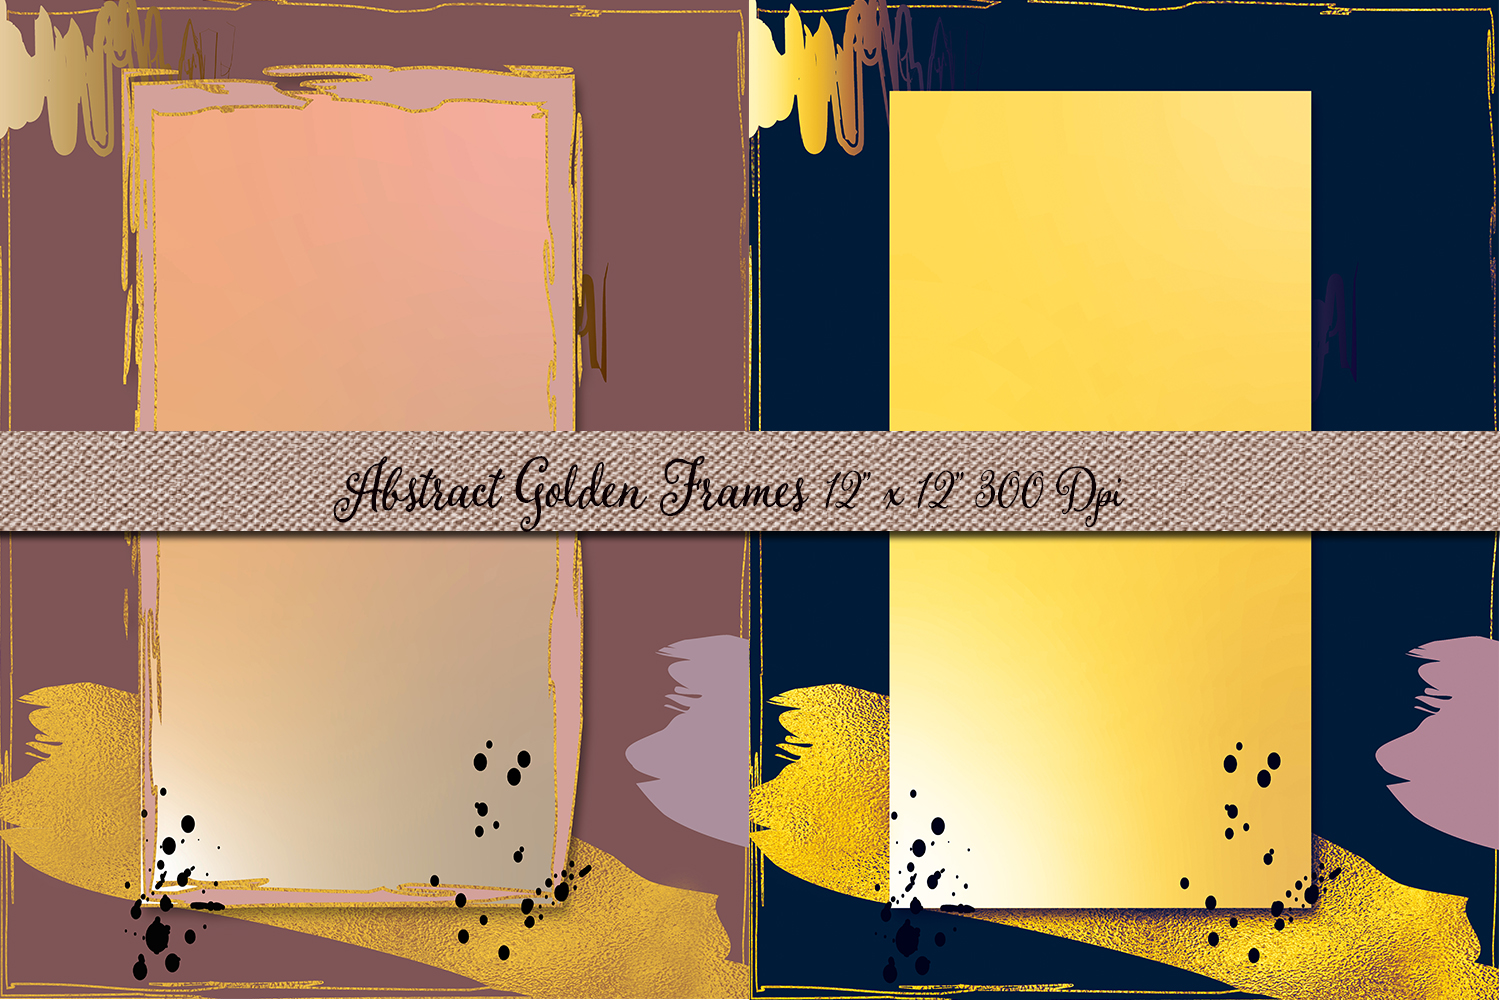 Vintage Golden Textured Frames- Abstract Backdrops example image 2